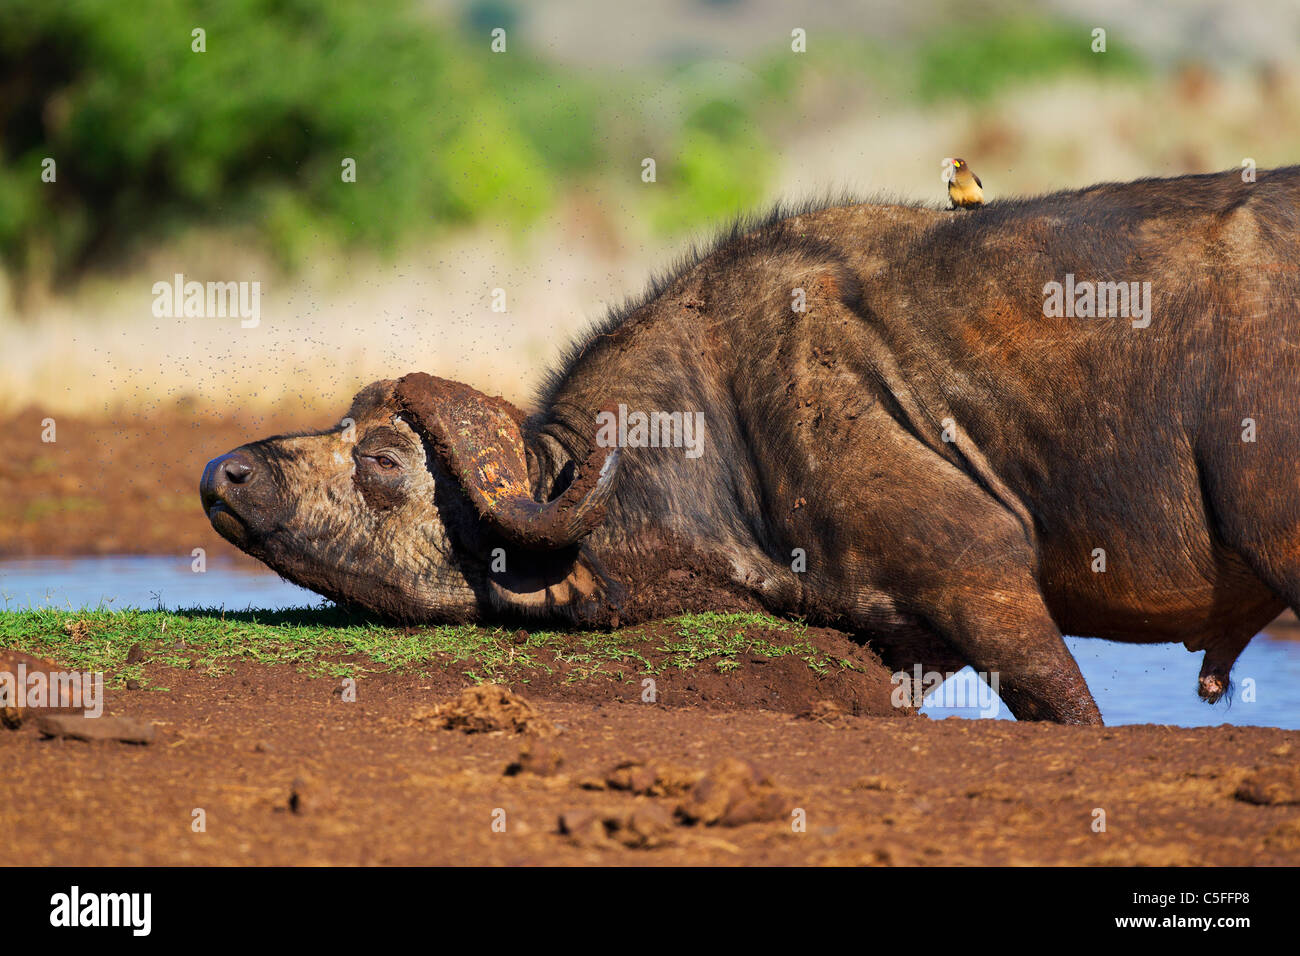 Buffle (Syncerus caffer) au Kenya Photo Stock